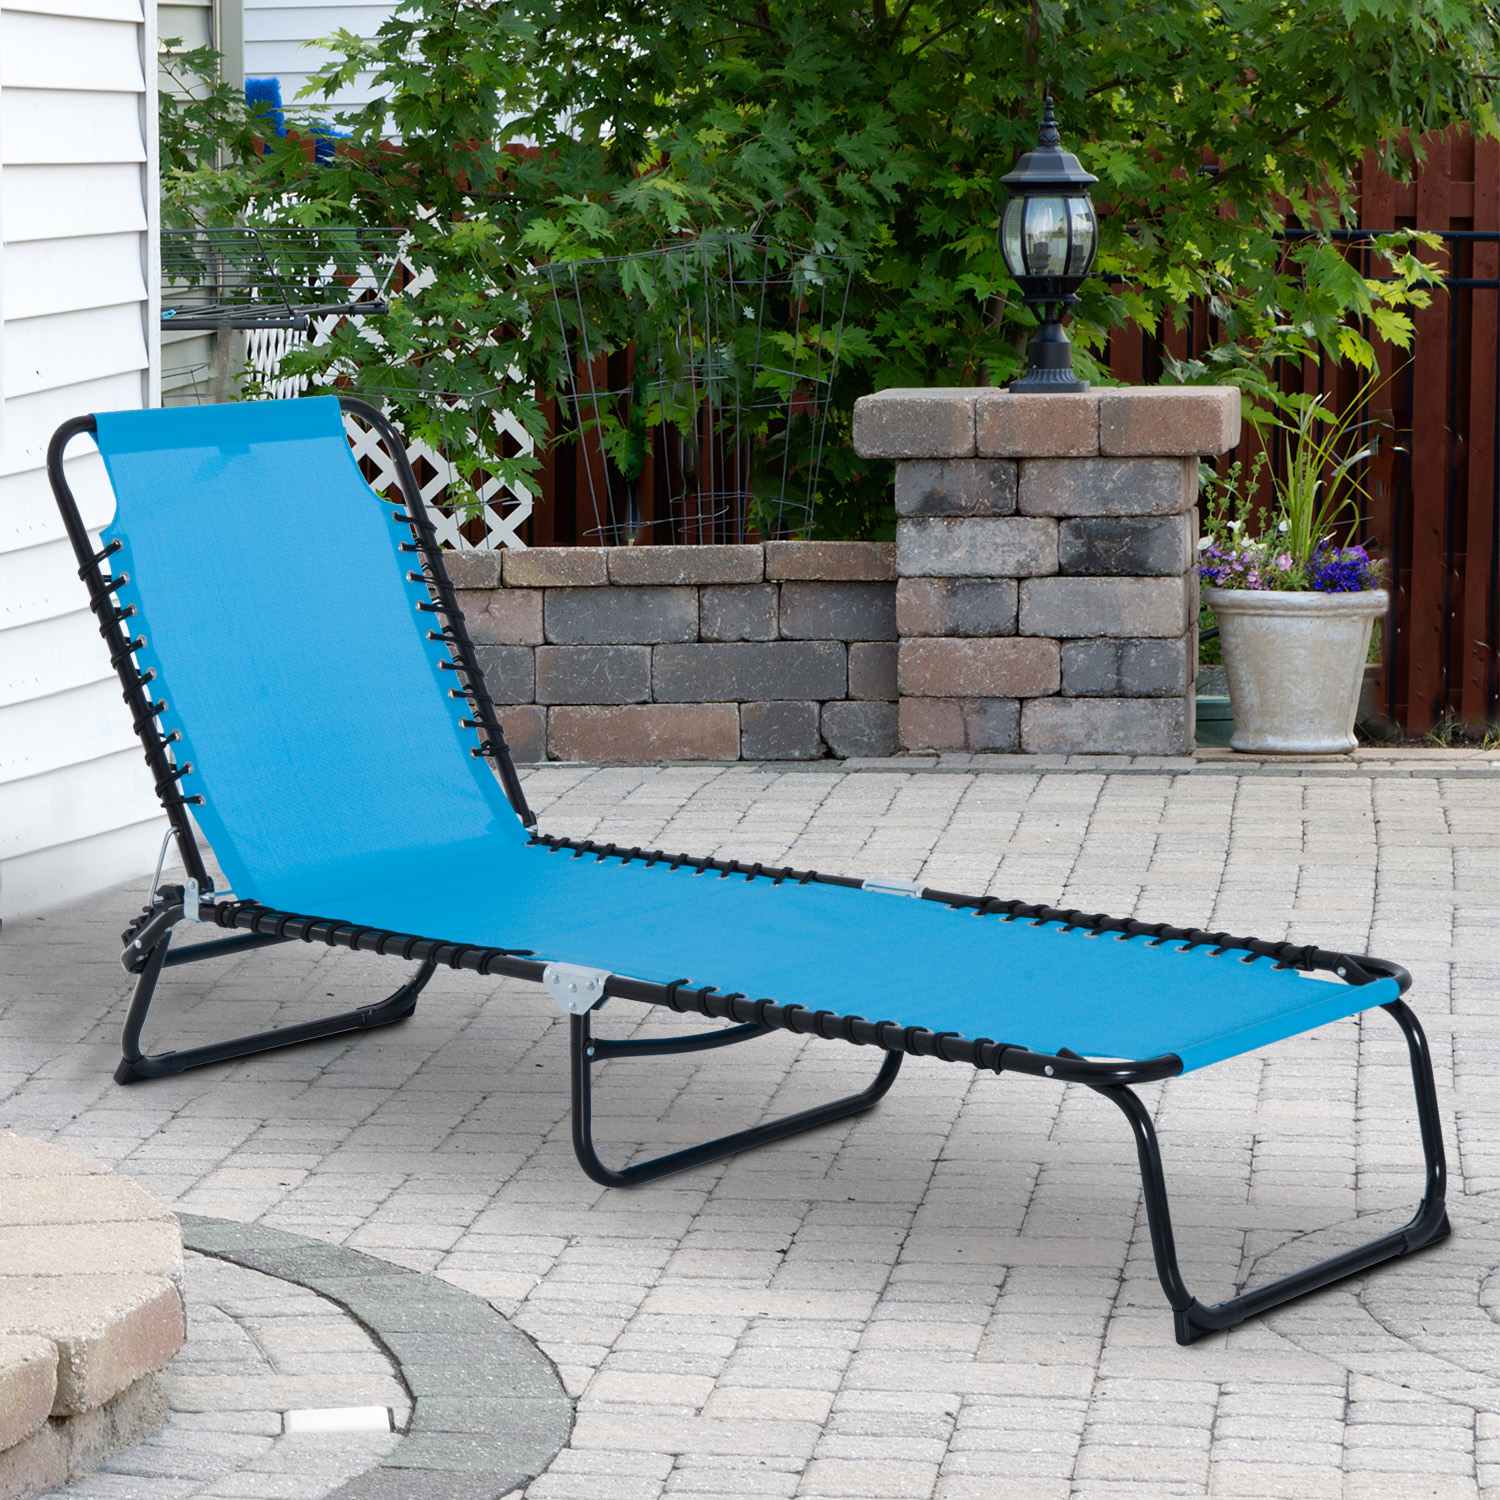 Folding Sleeping Chair Details About 3 Position Portable Reclining Beach Chaise Lounge Adjustable Sleeping Light Blue